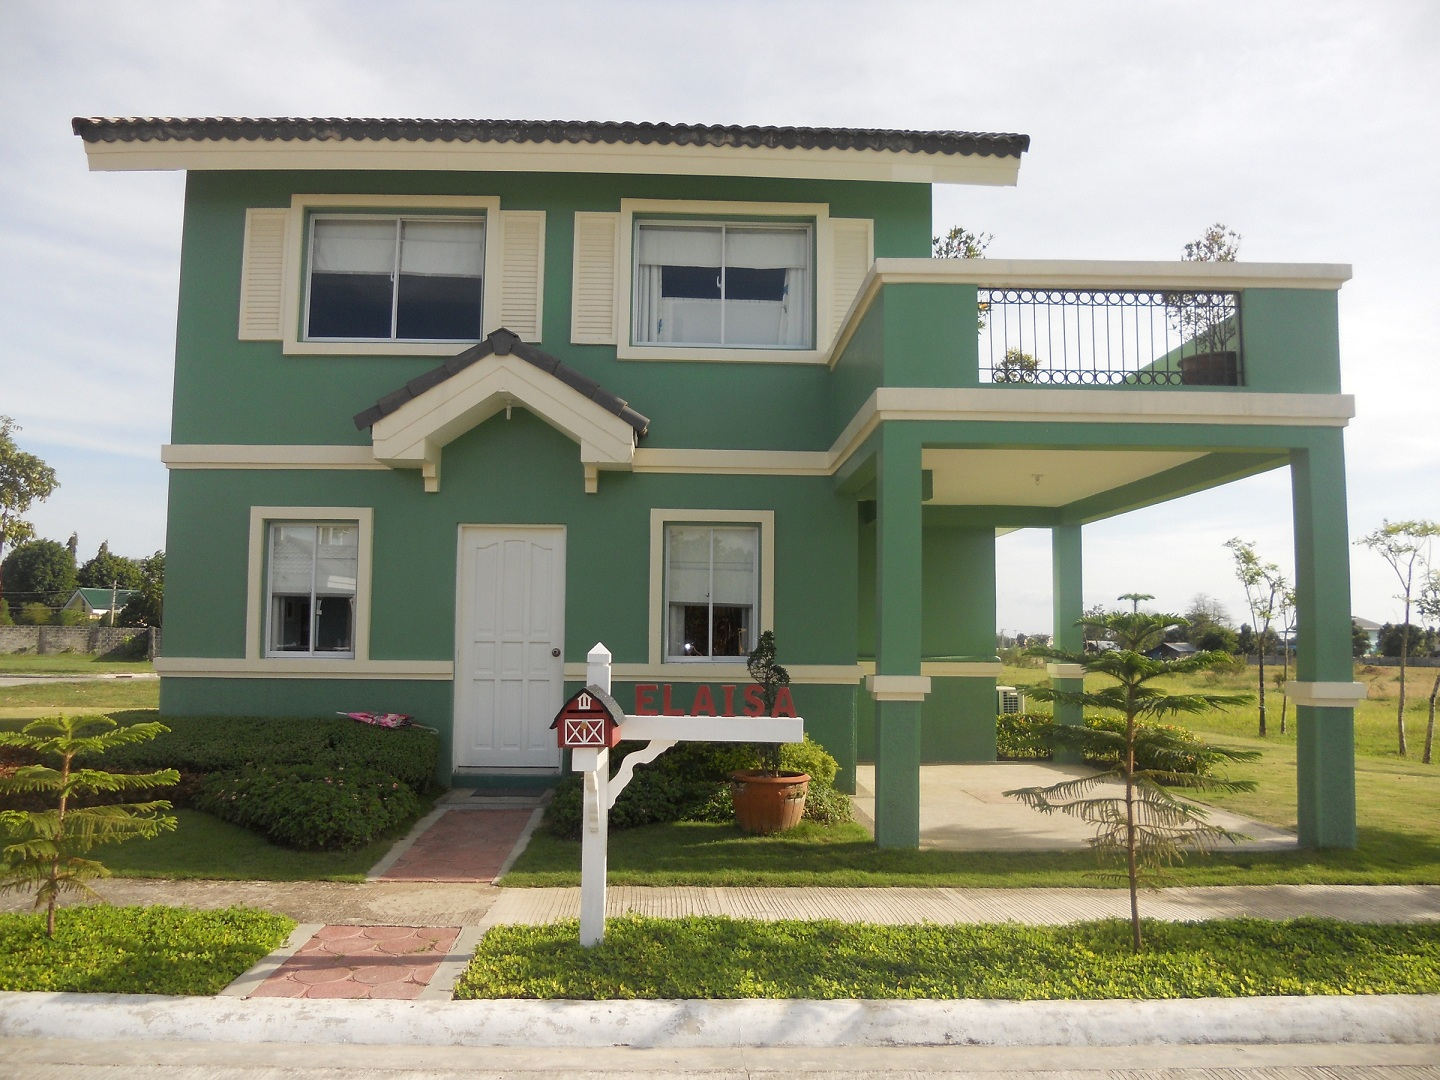 Camella home series iloilo within savannah iloilo by for The model house